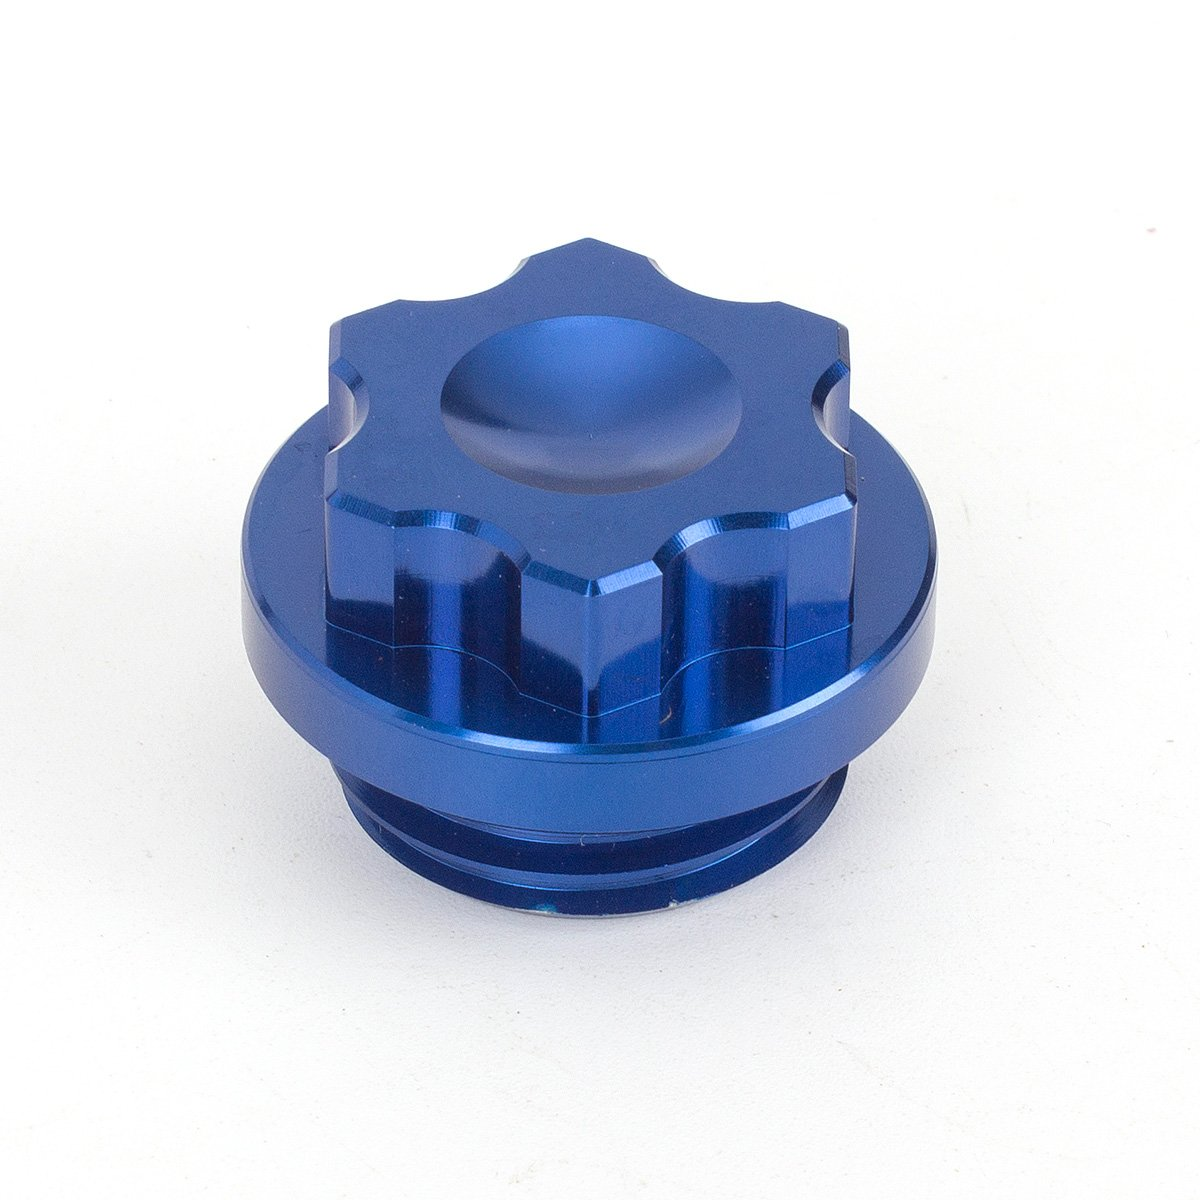 FXCNC Racing Motorcycle Anodized Filler Oil Caps fit for Yamaha YZF R1 1998-2003, 2007-2012 Aluminum Blue